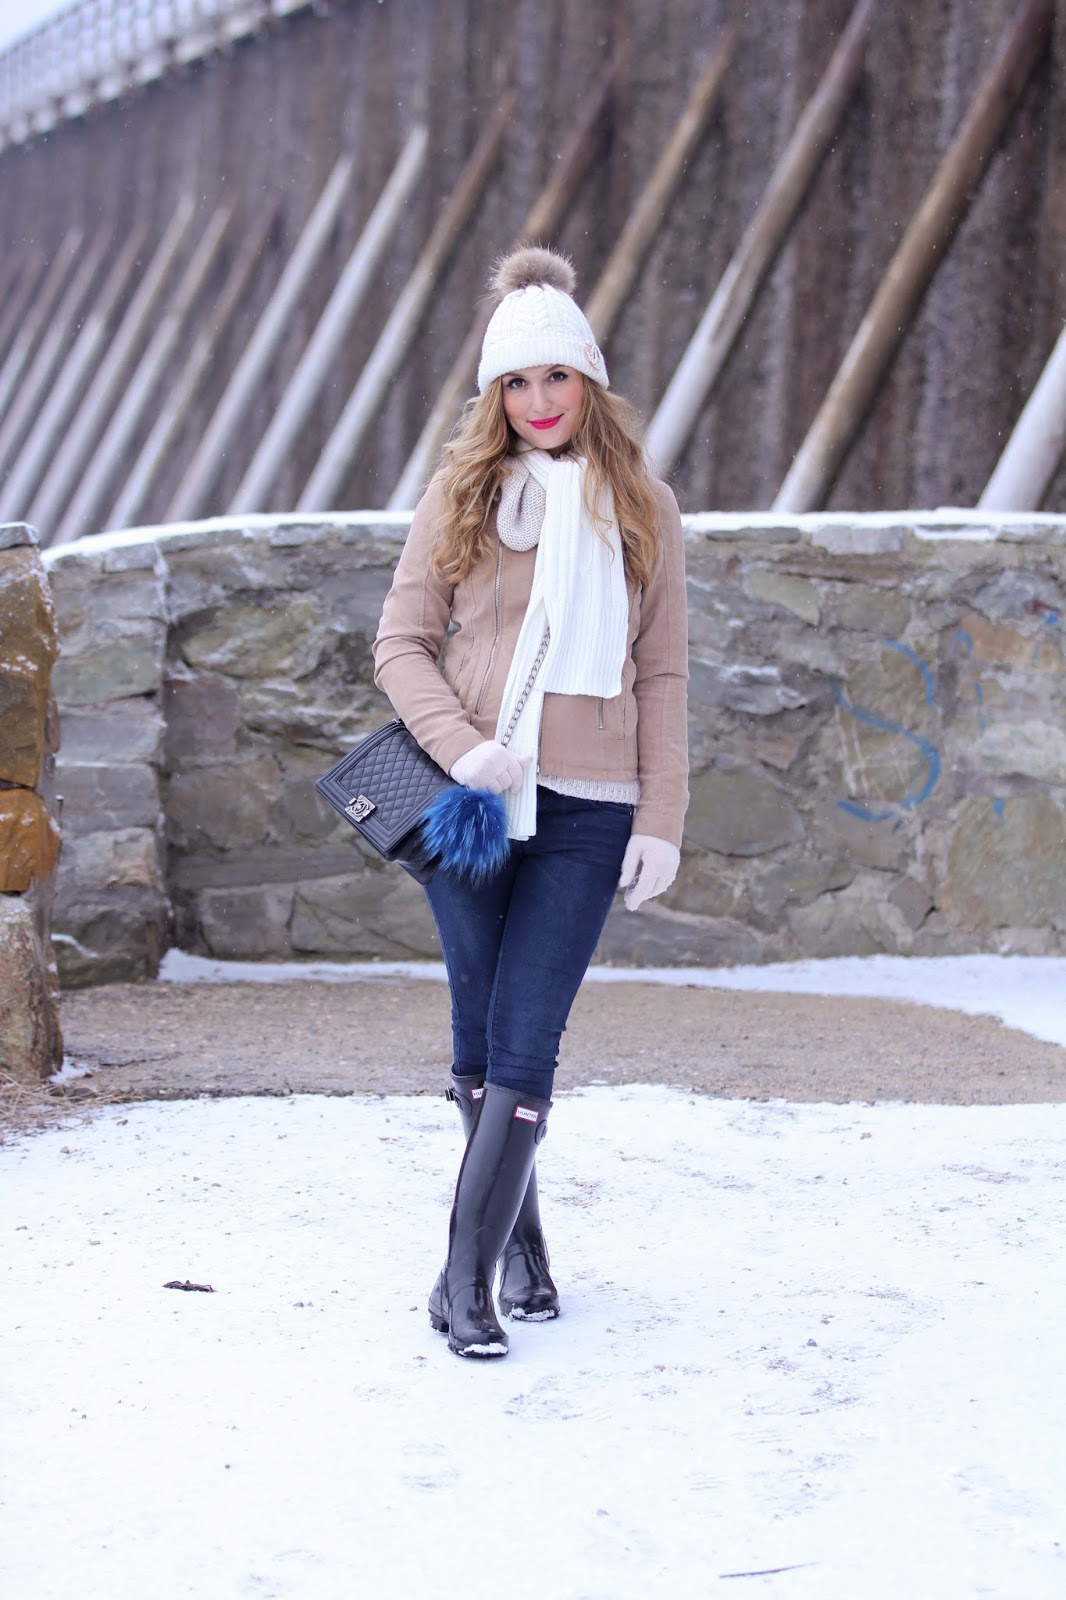 was-zieht-man-im-winter-an-winterlook-winteroutfit-blogger-fashionstylebyjohanna-chanel